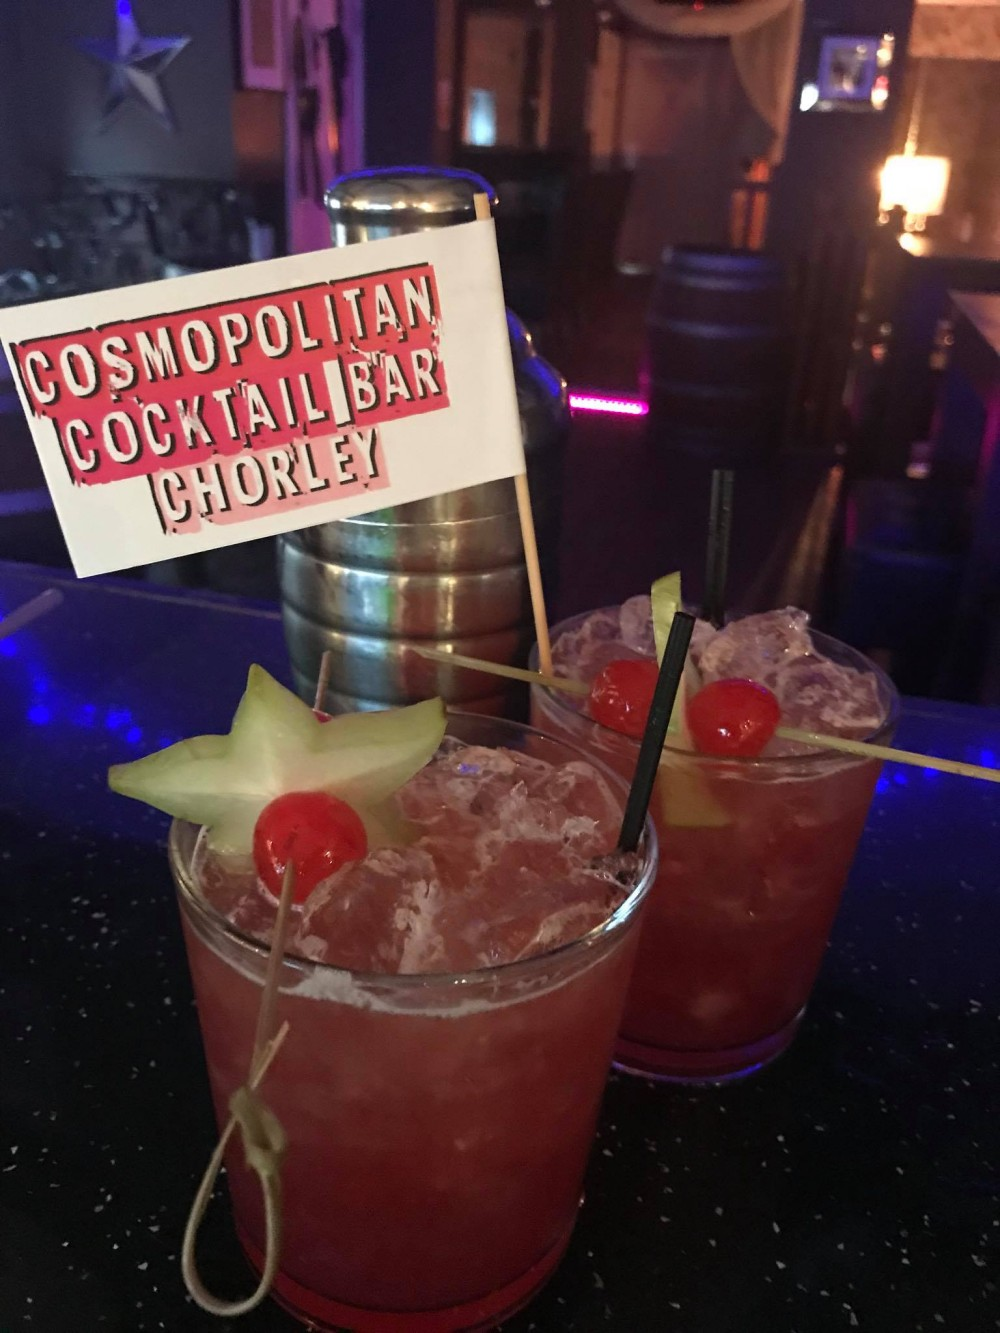 The Cocktail Bar – The Cosmopolitan